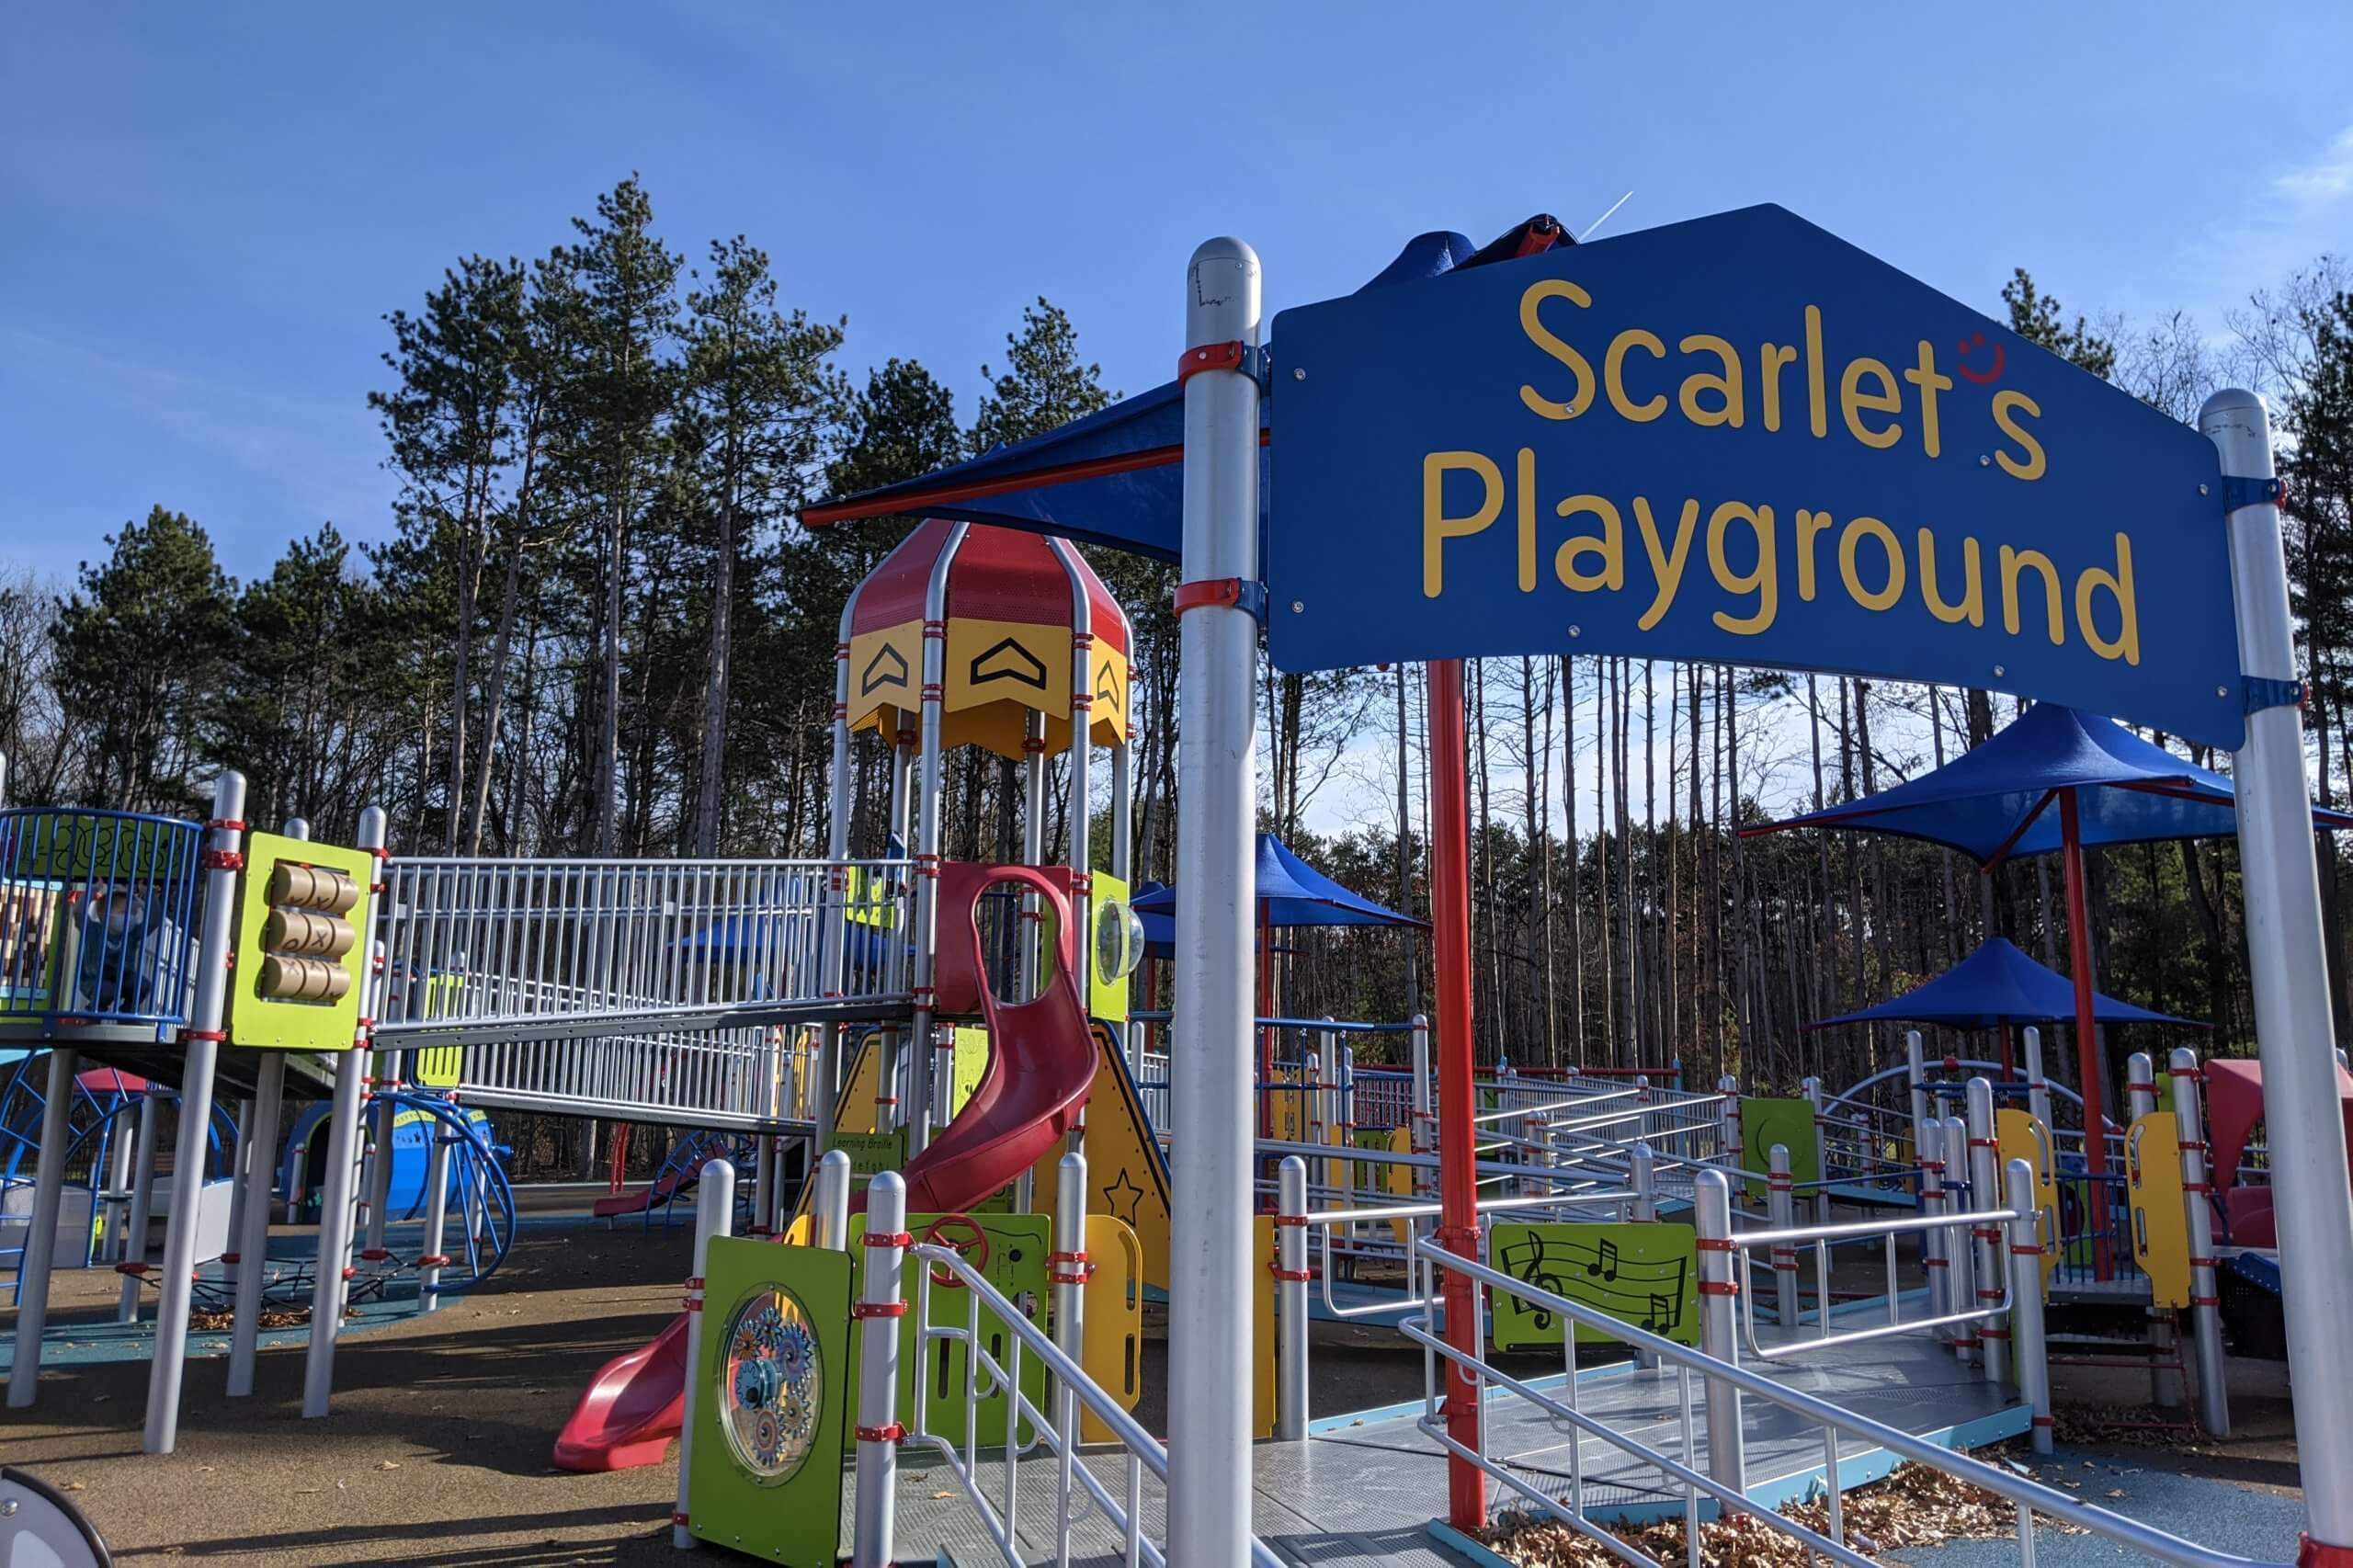 Scarlet's Playground Is A Michigan Park Designed For All Ages + Abilities